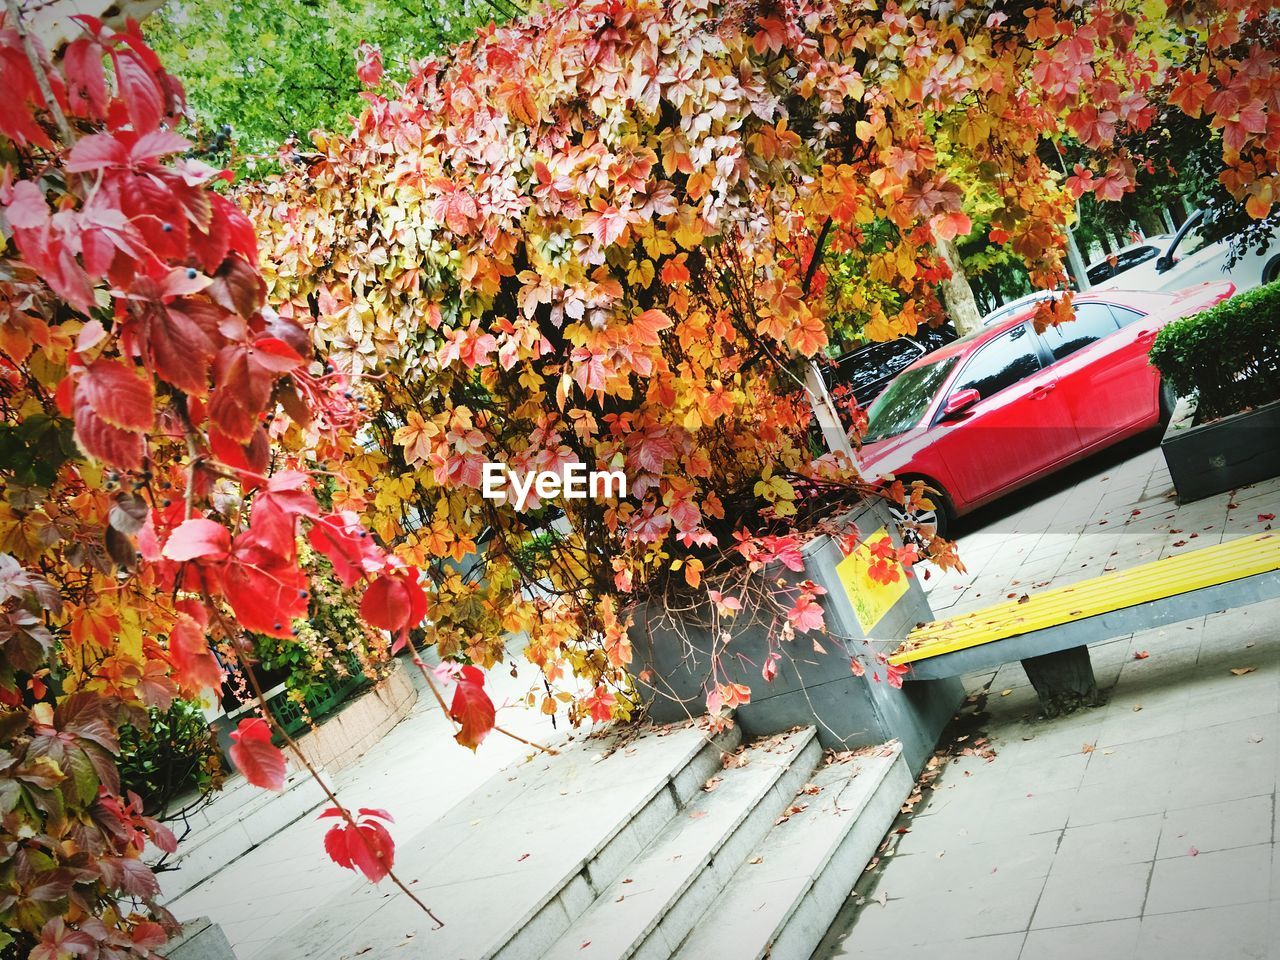 autumn, leaf, change, nature, outdoors, day, beauty in nature, land vehicle, no people, red, growth, maple leaf, mode of transport, tree, plant, transportation, fragility, yellow, flower, close-up, maple